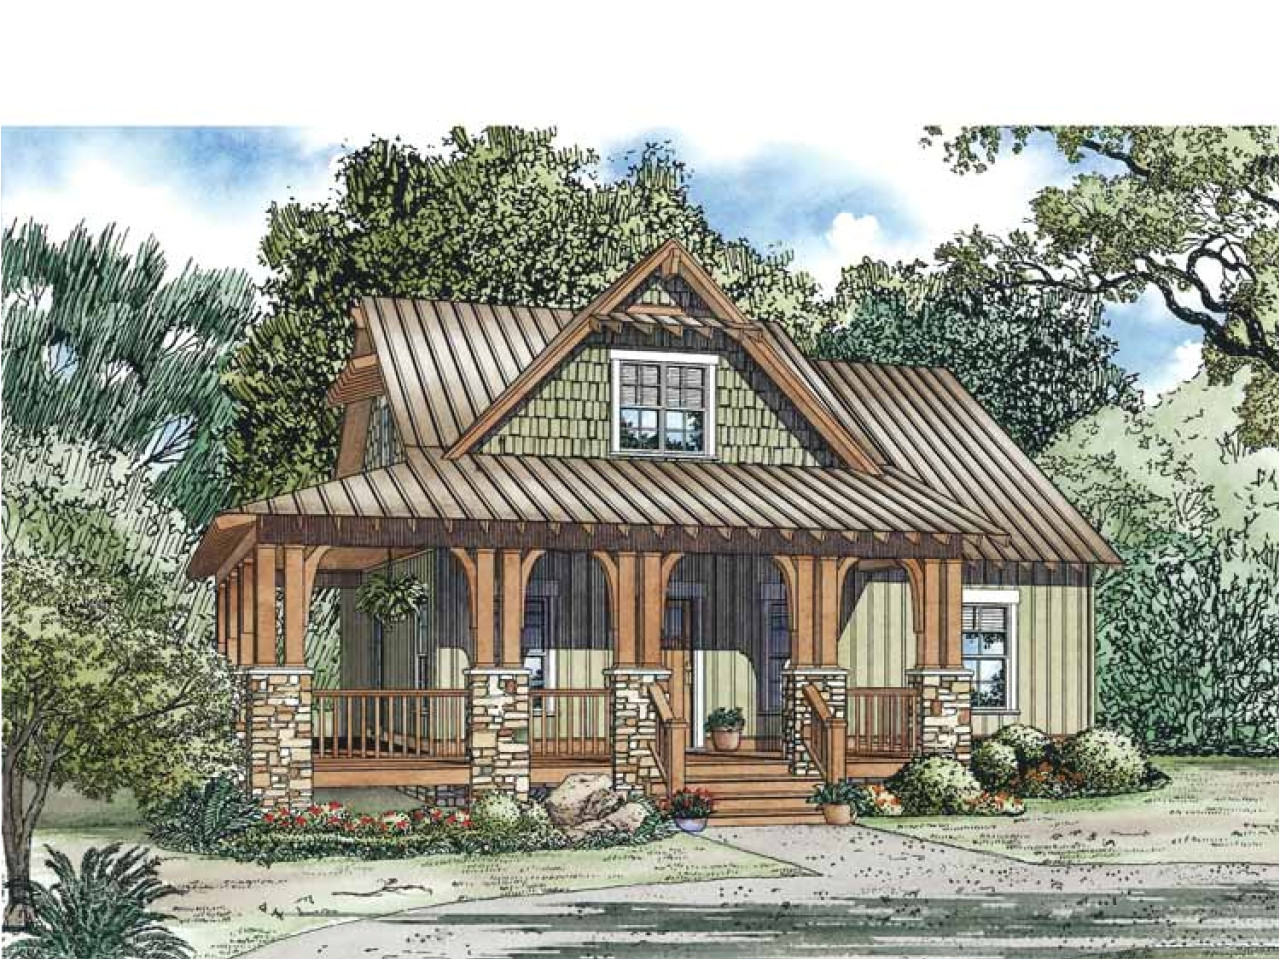 037a4266480e9061 english cottage house floor plans small country cottage house plans